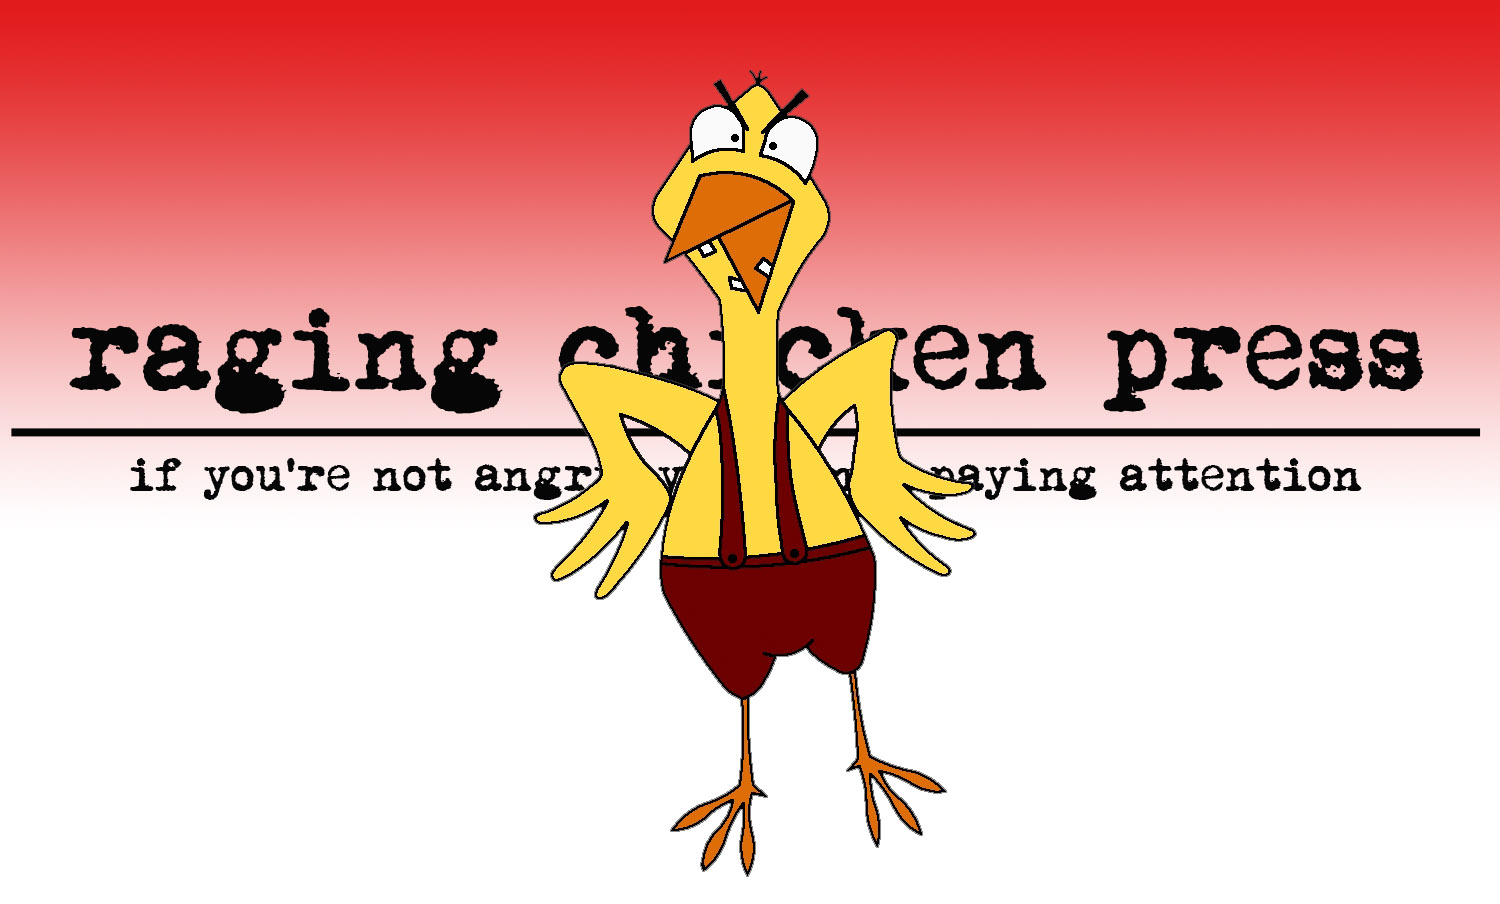 raging chicken #3 by Liz Folk, Raging Chicken Press contributor. See more of her work @ http://www.inkletween.com/